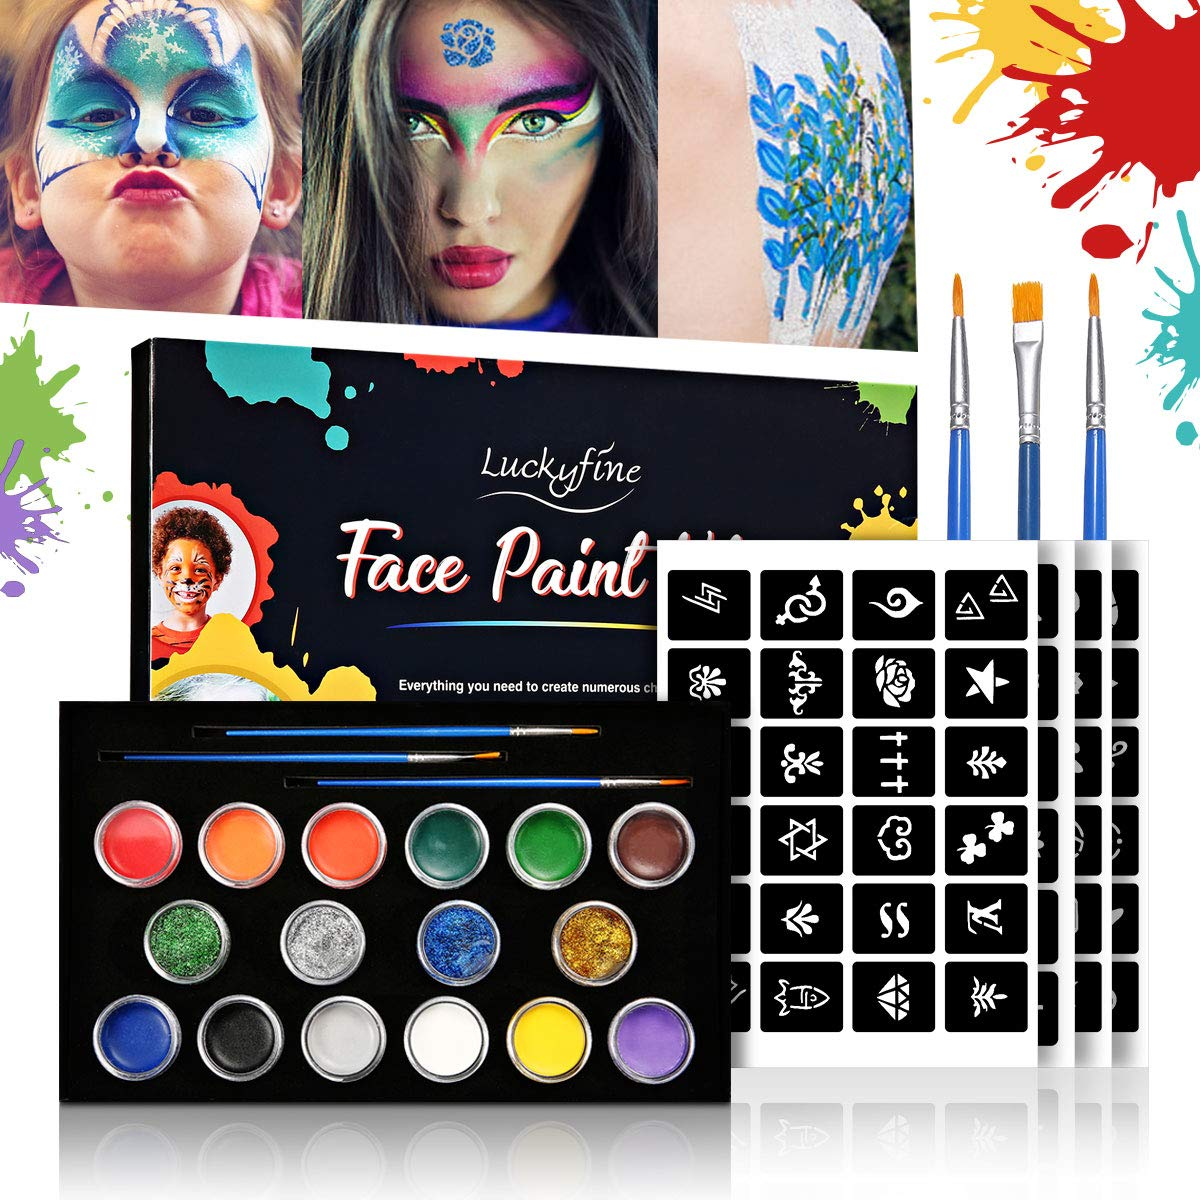 Face Paint Kit Halloween, Face and Body Paint Kits with 12 Colors Oil Paint, Face and Body Art with Stencils, Easy to Wash, Suit for Children and Adults, Parties